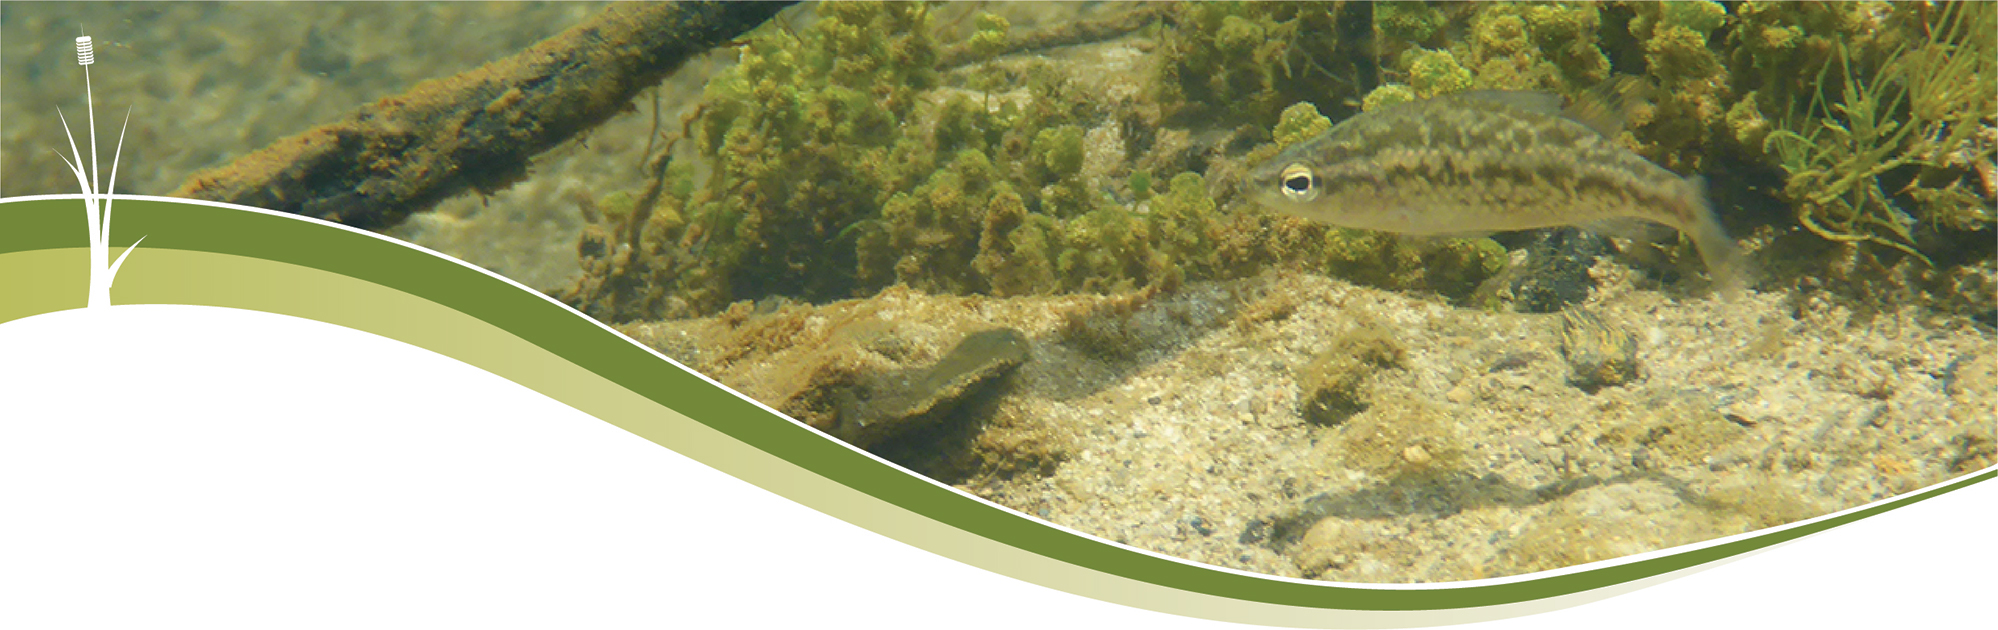 Header image of a fish around seagrass